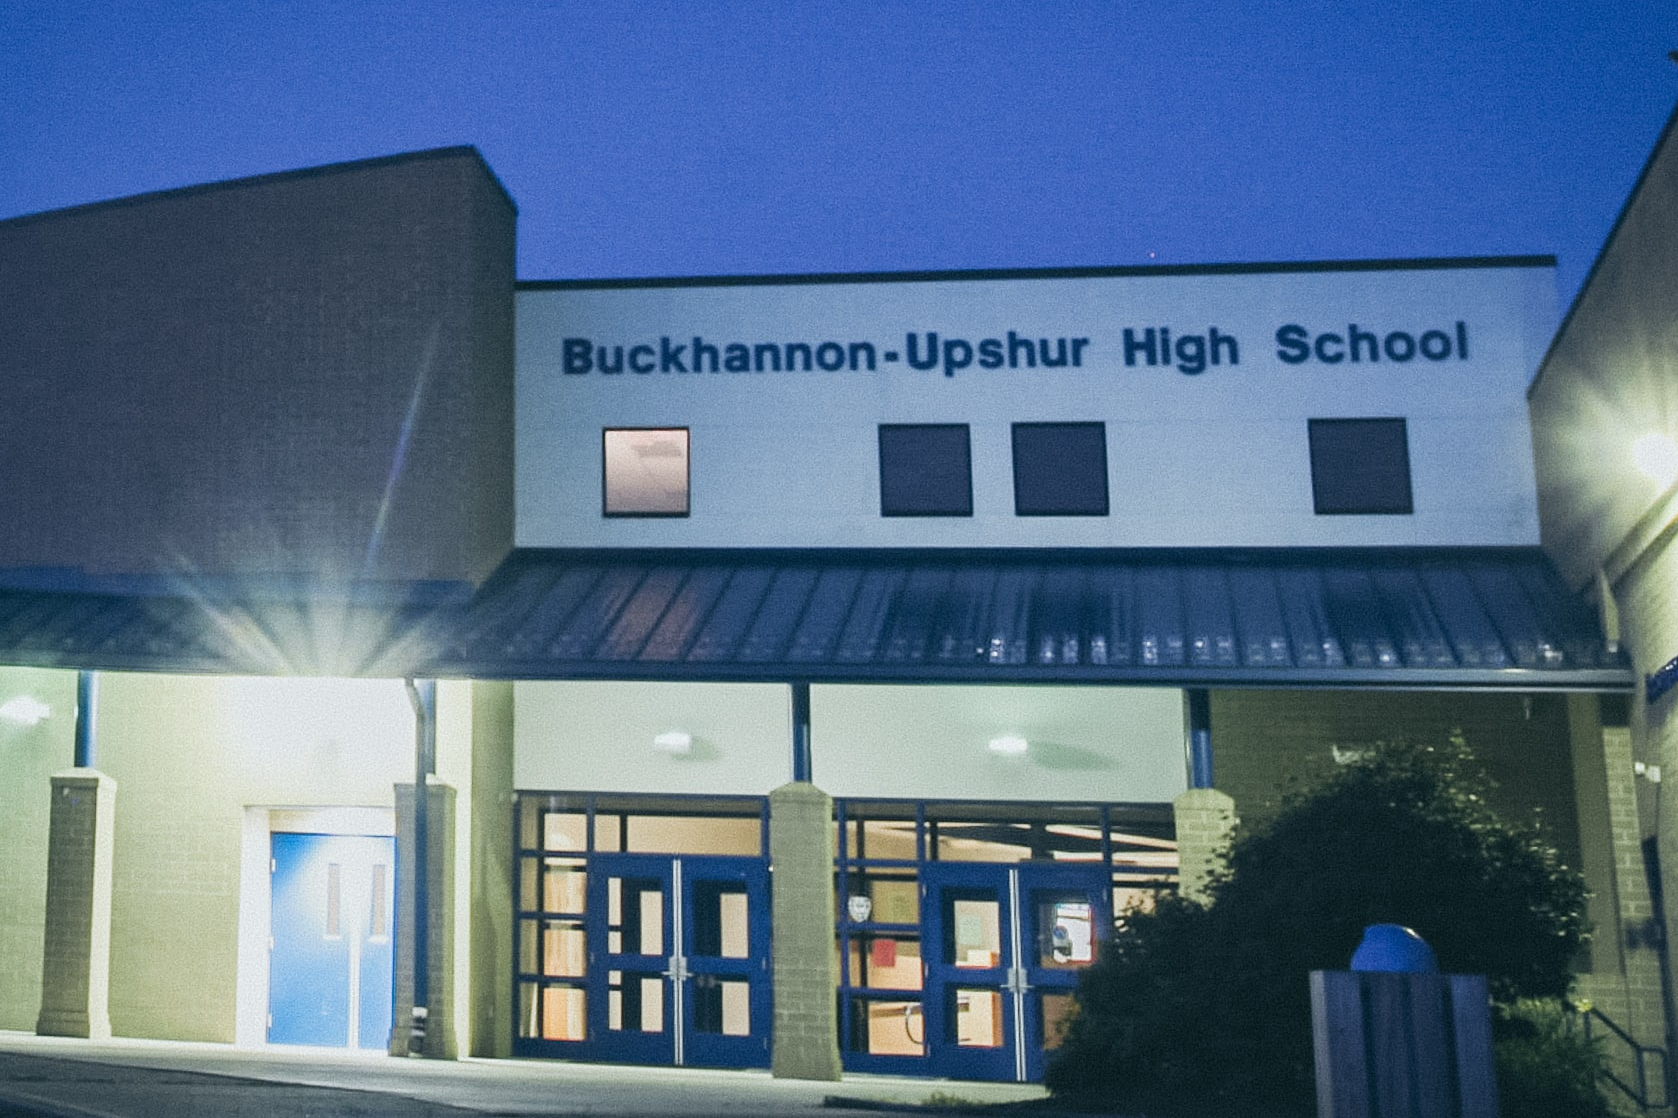 Buckhannon- Upshur High School